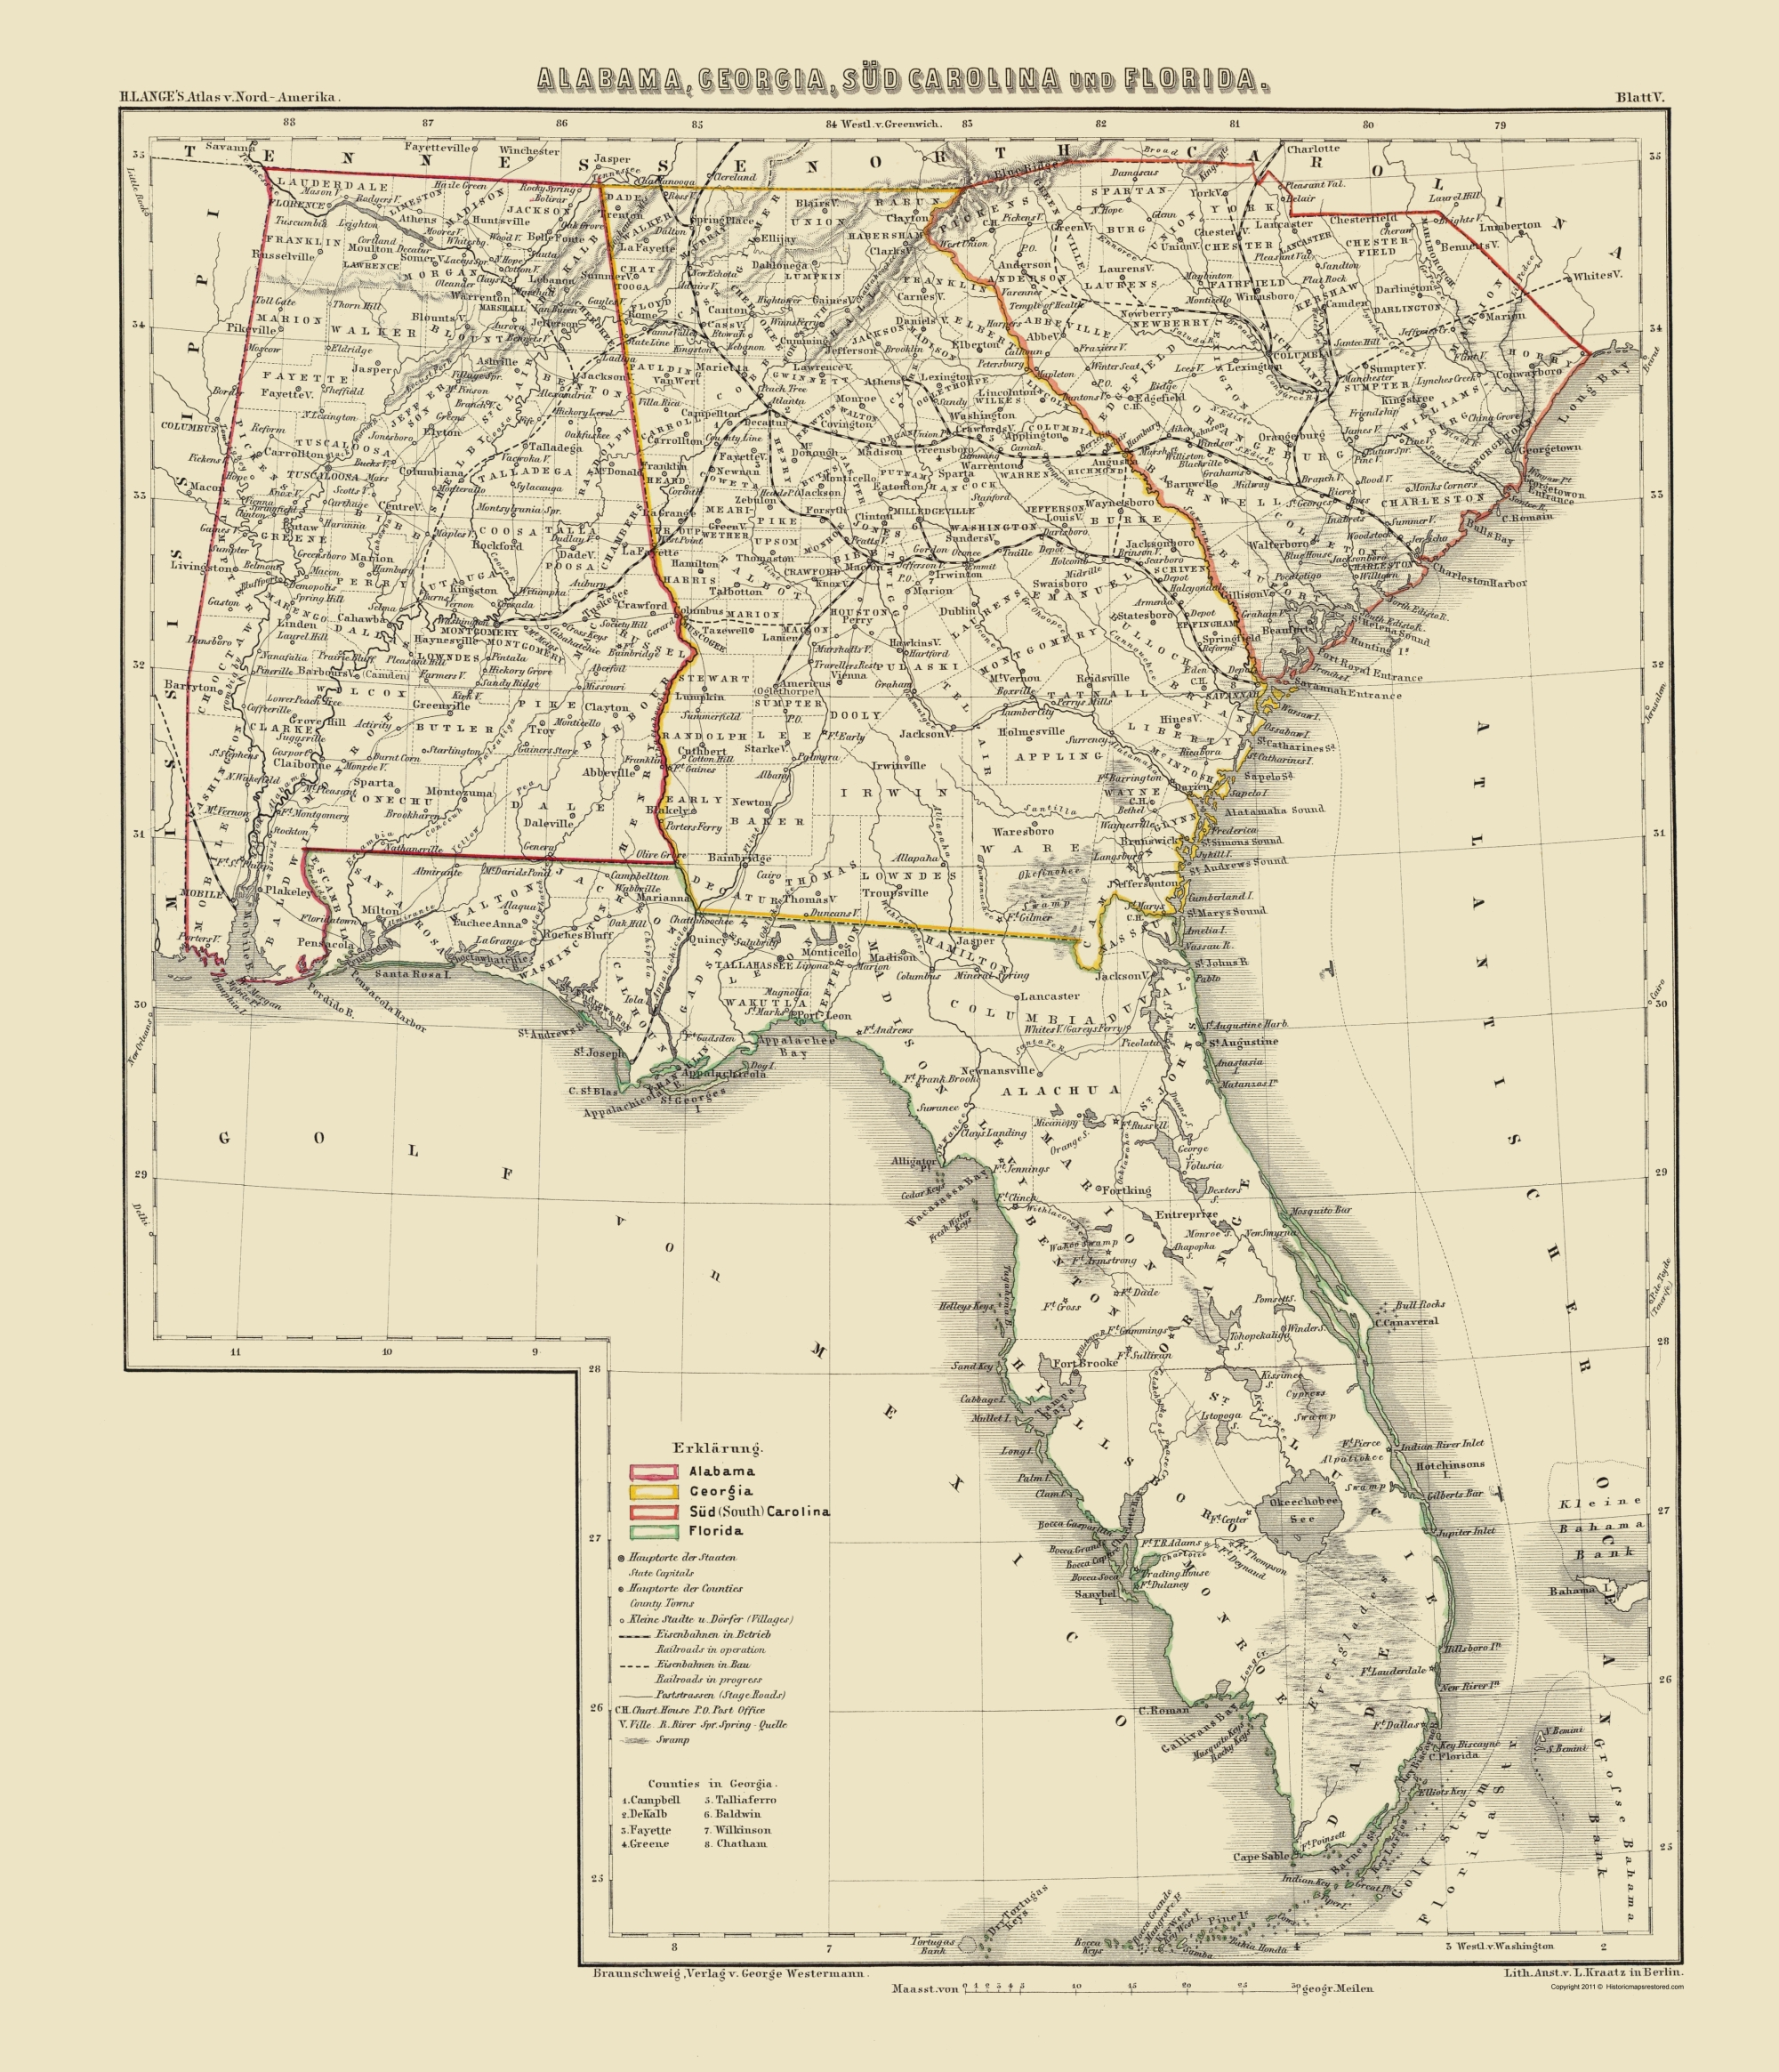 Georgia and Alabama. / Johnson, A.J. / 1860